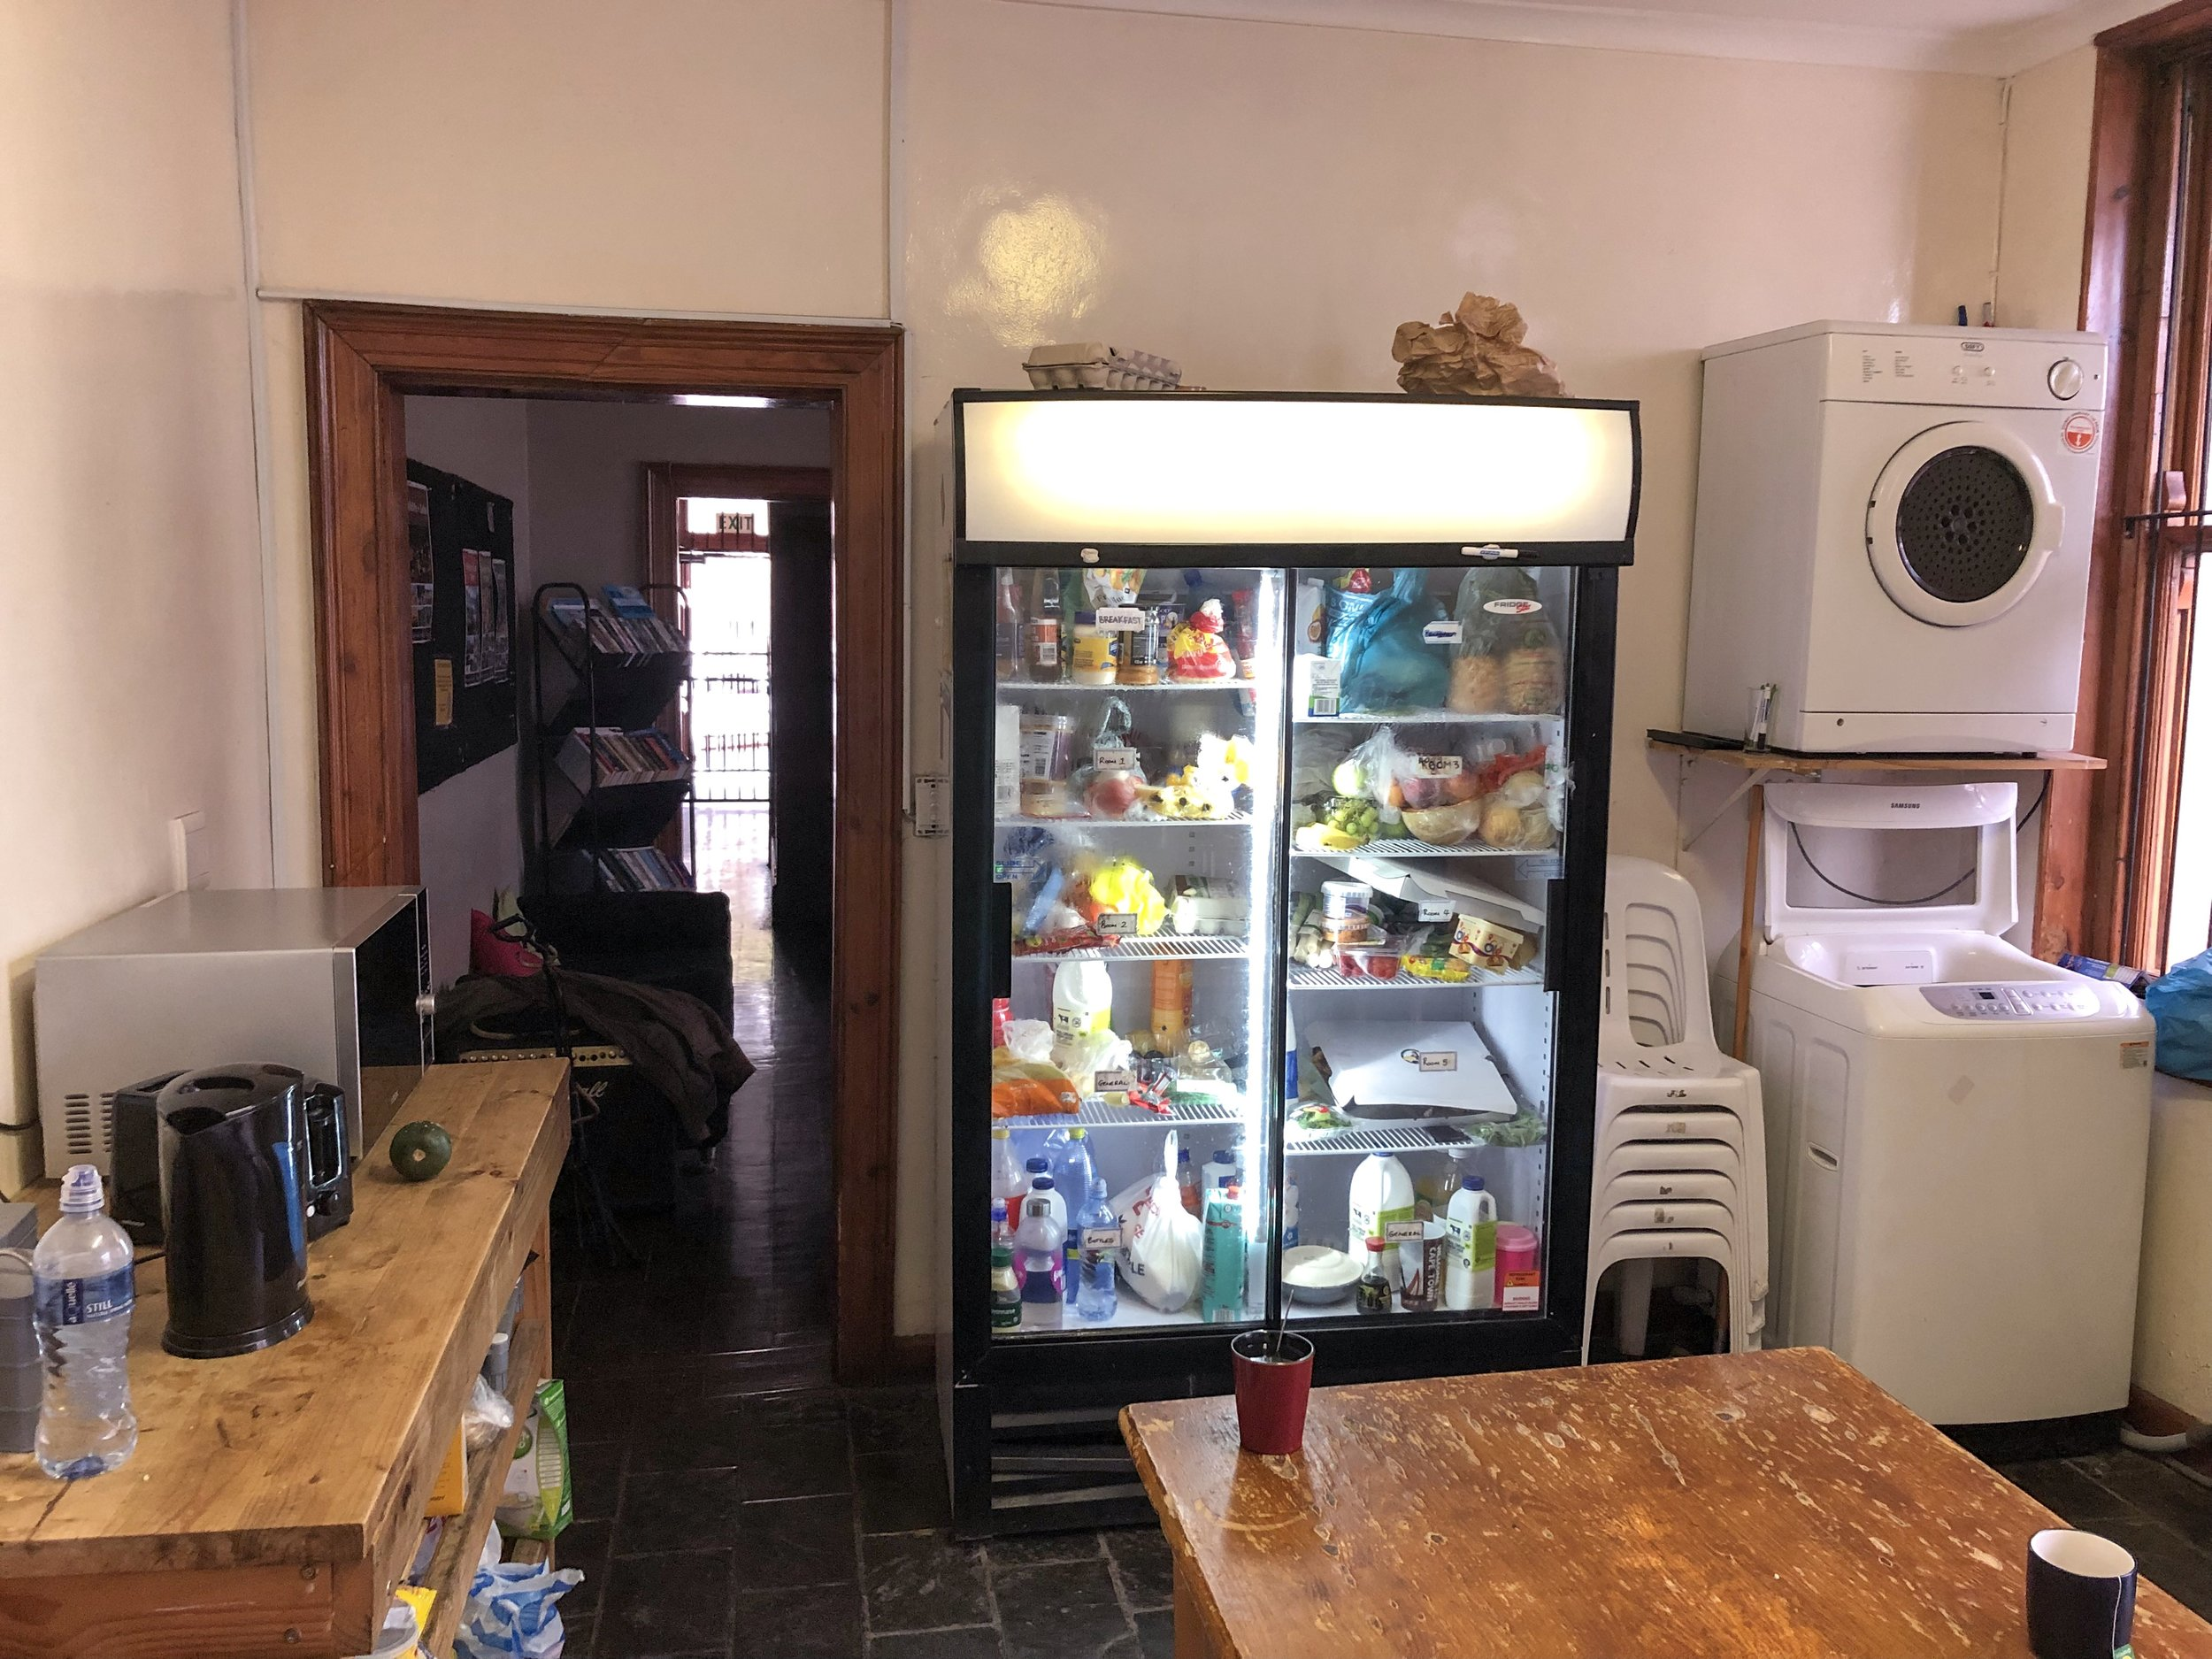 Communal fridge. Each room had a shelf, and contents in the top left shelf were free to take and use.